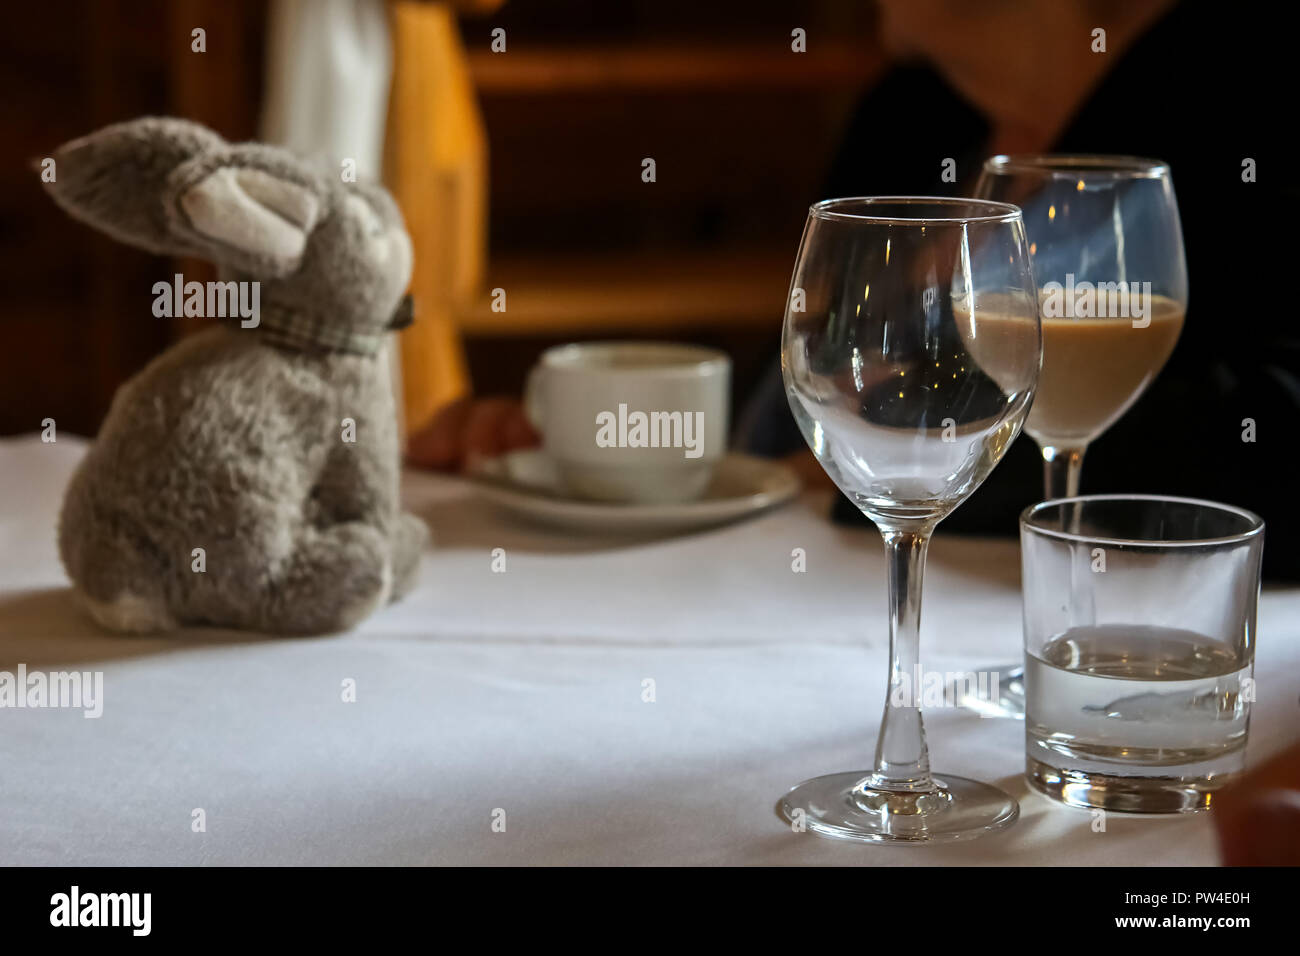 Glass with Irish creme liqueur, empty glass, glass with water, cofee cup and rabbit on the table. - Stock Image